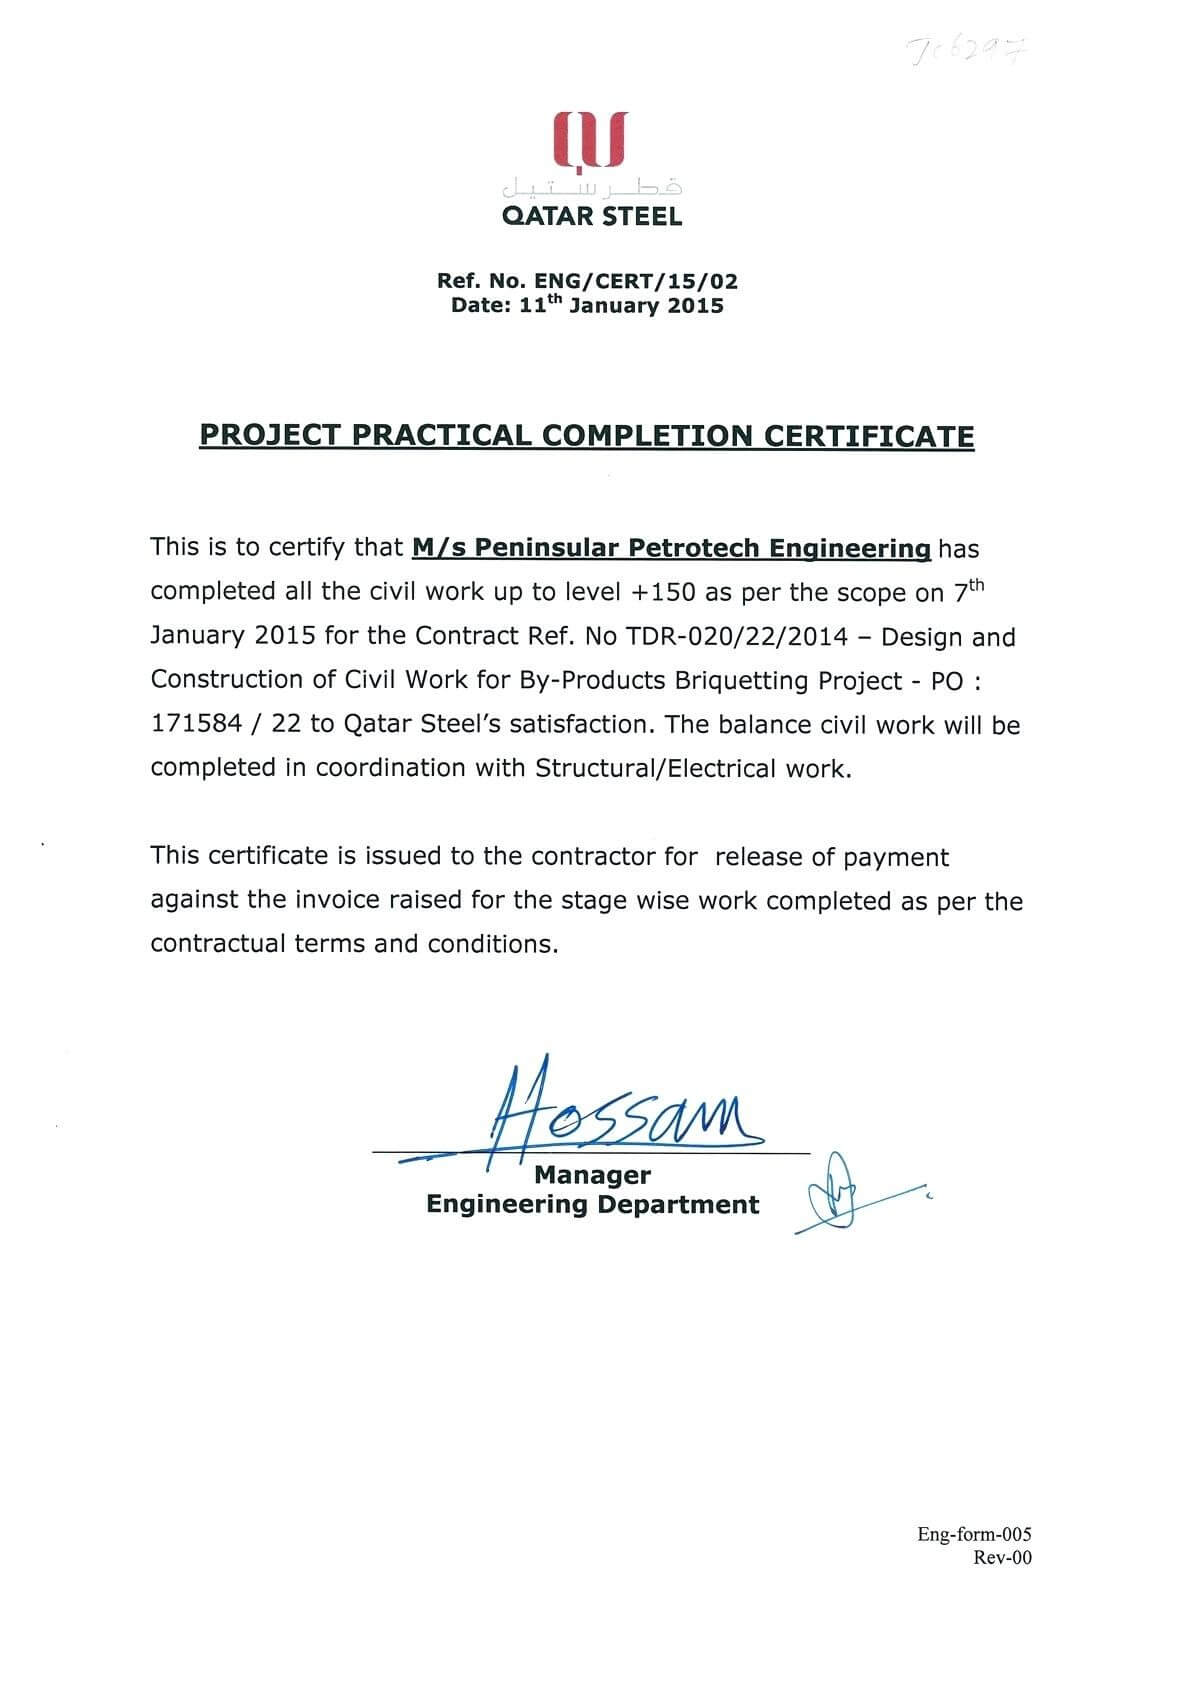 028 Construction Work Order Template Completion Certificate Regarding Practical Completion Certificate Template Uk